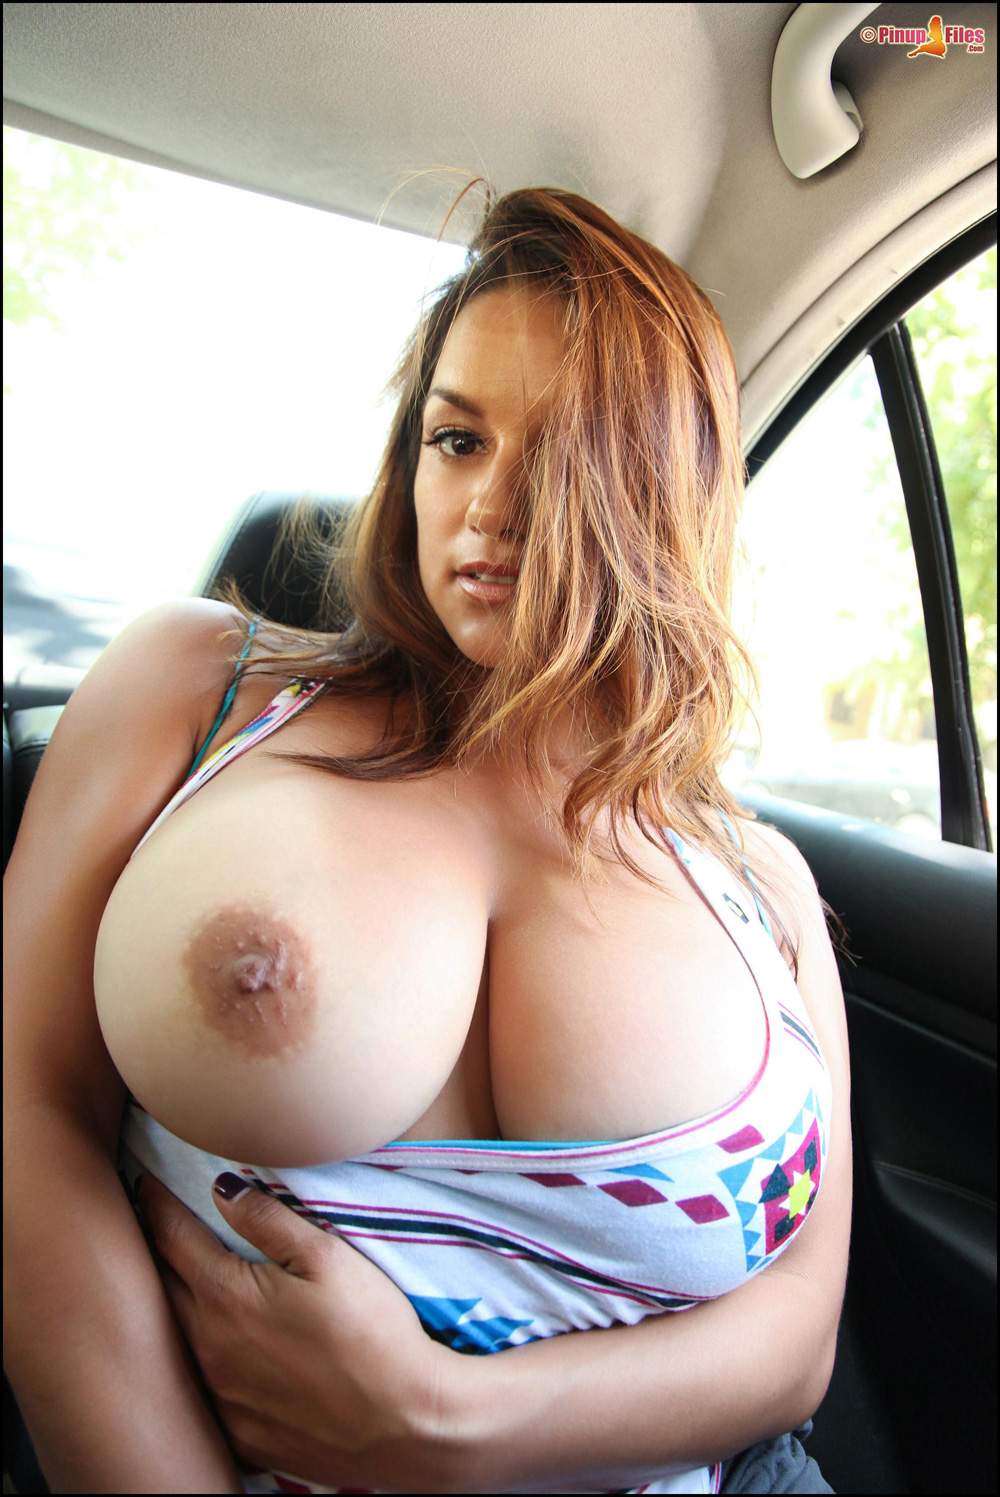 Fast big tits gallery hentai videos